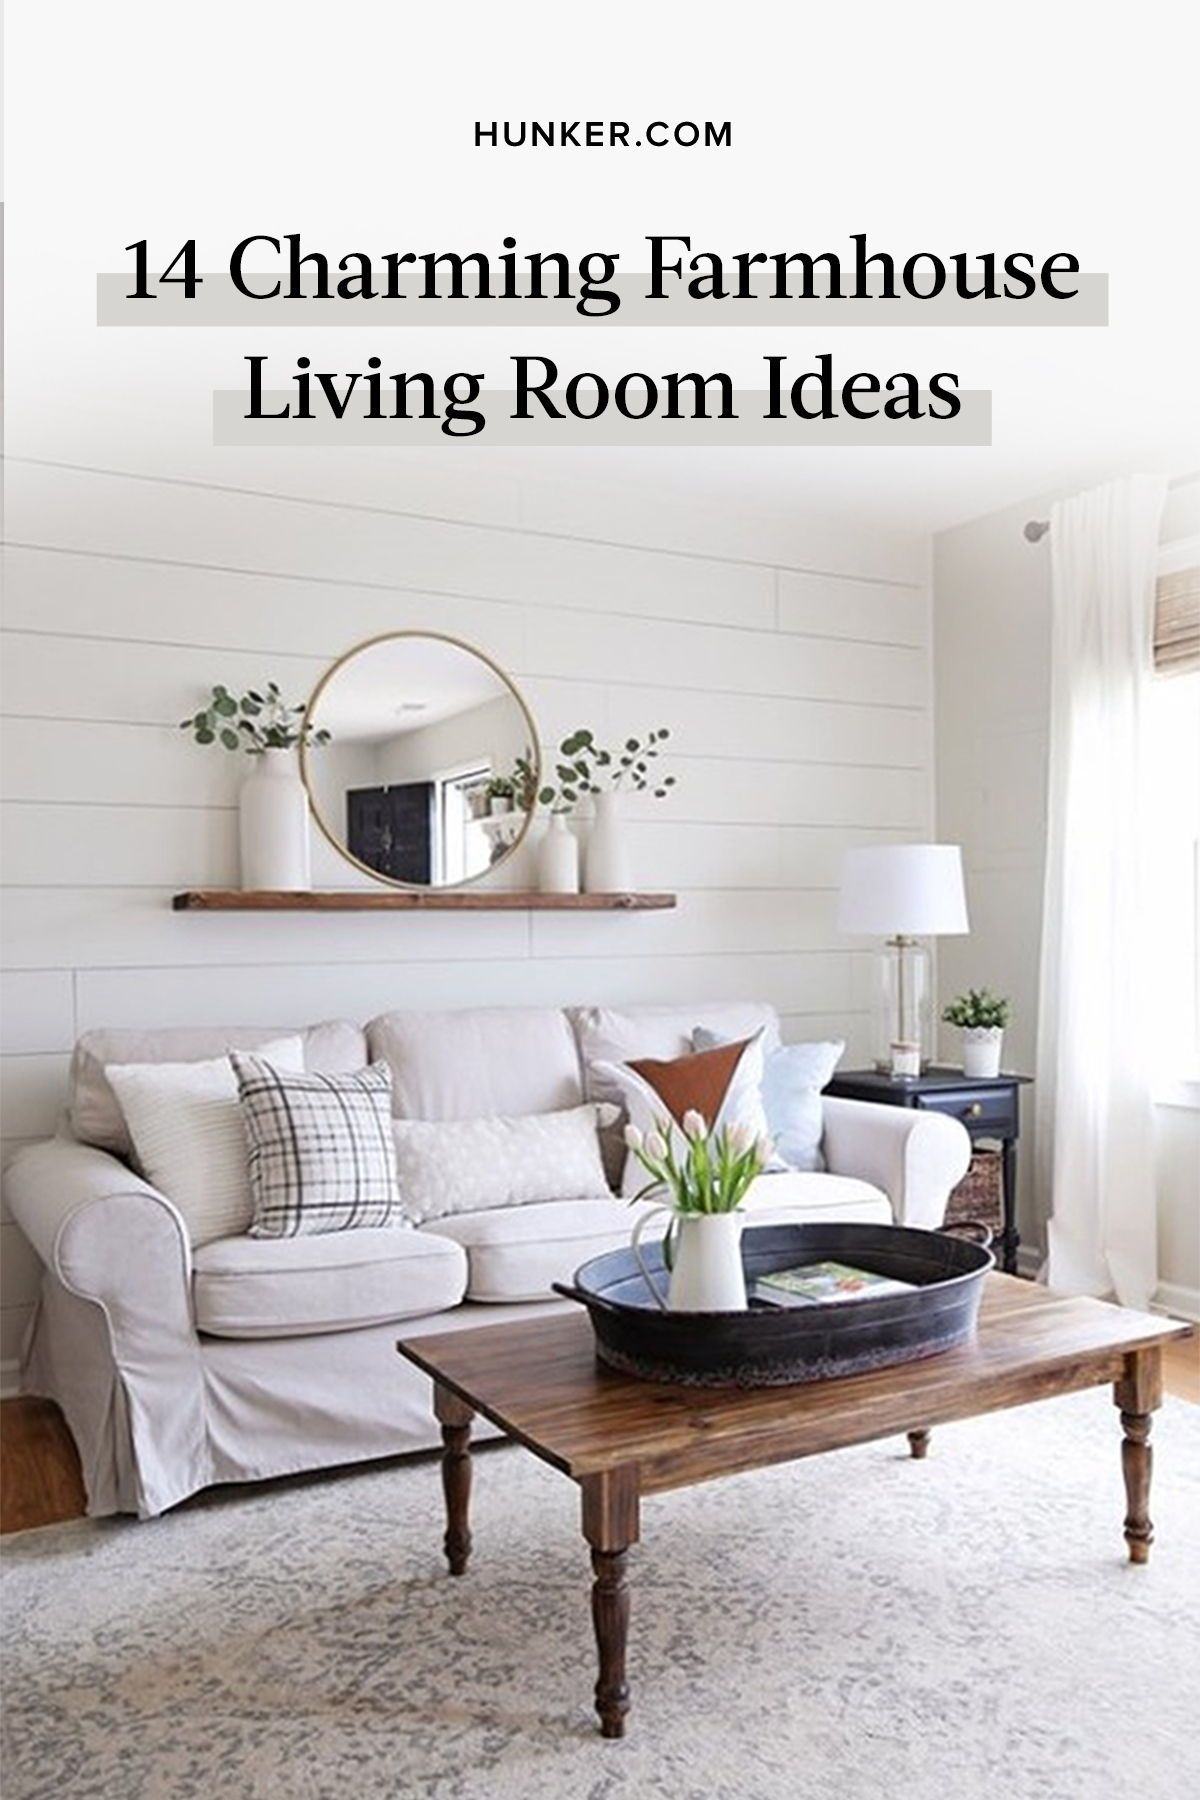 14 Farmhouse Living Room Ideas That Are Charming As All Get Out In 2020 Modern Rustic Living Room Farm House Living Room Simple Living Room